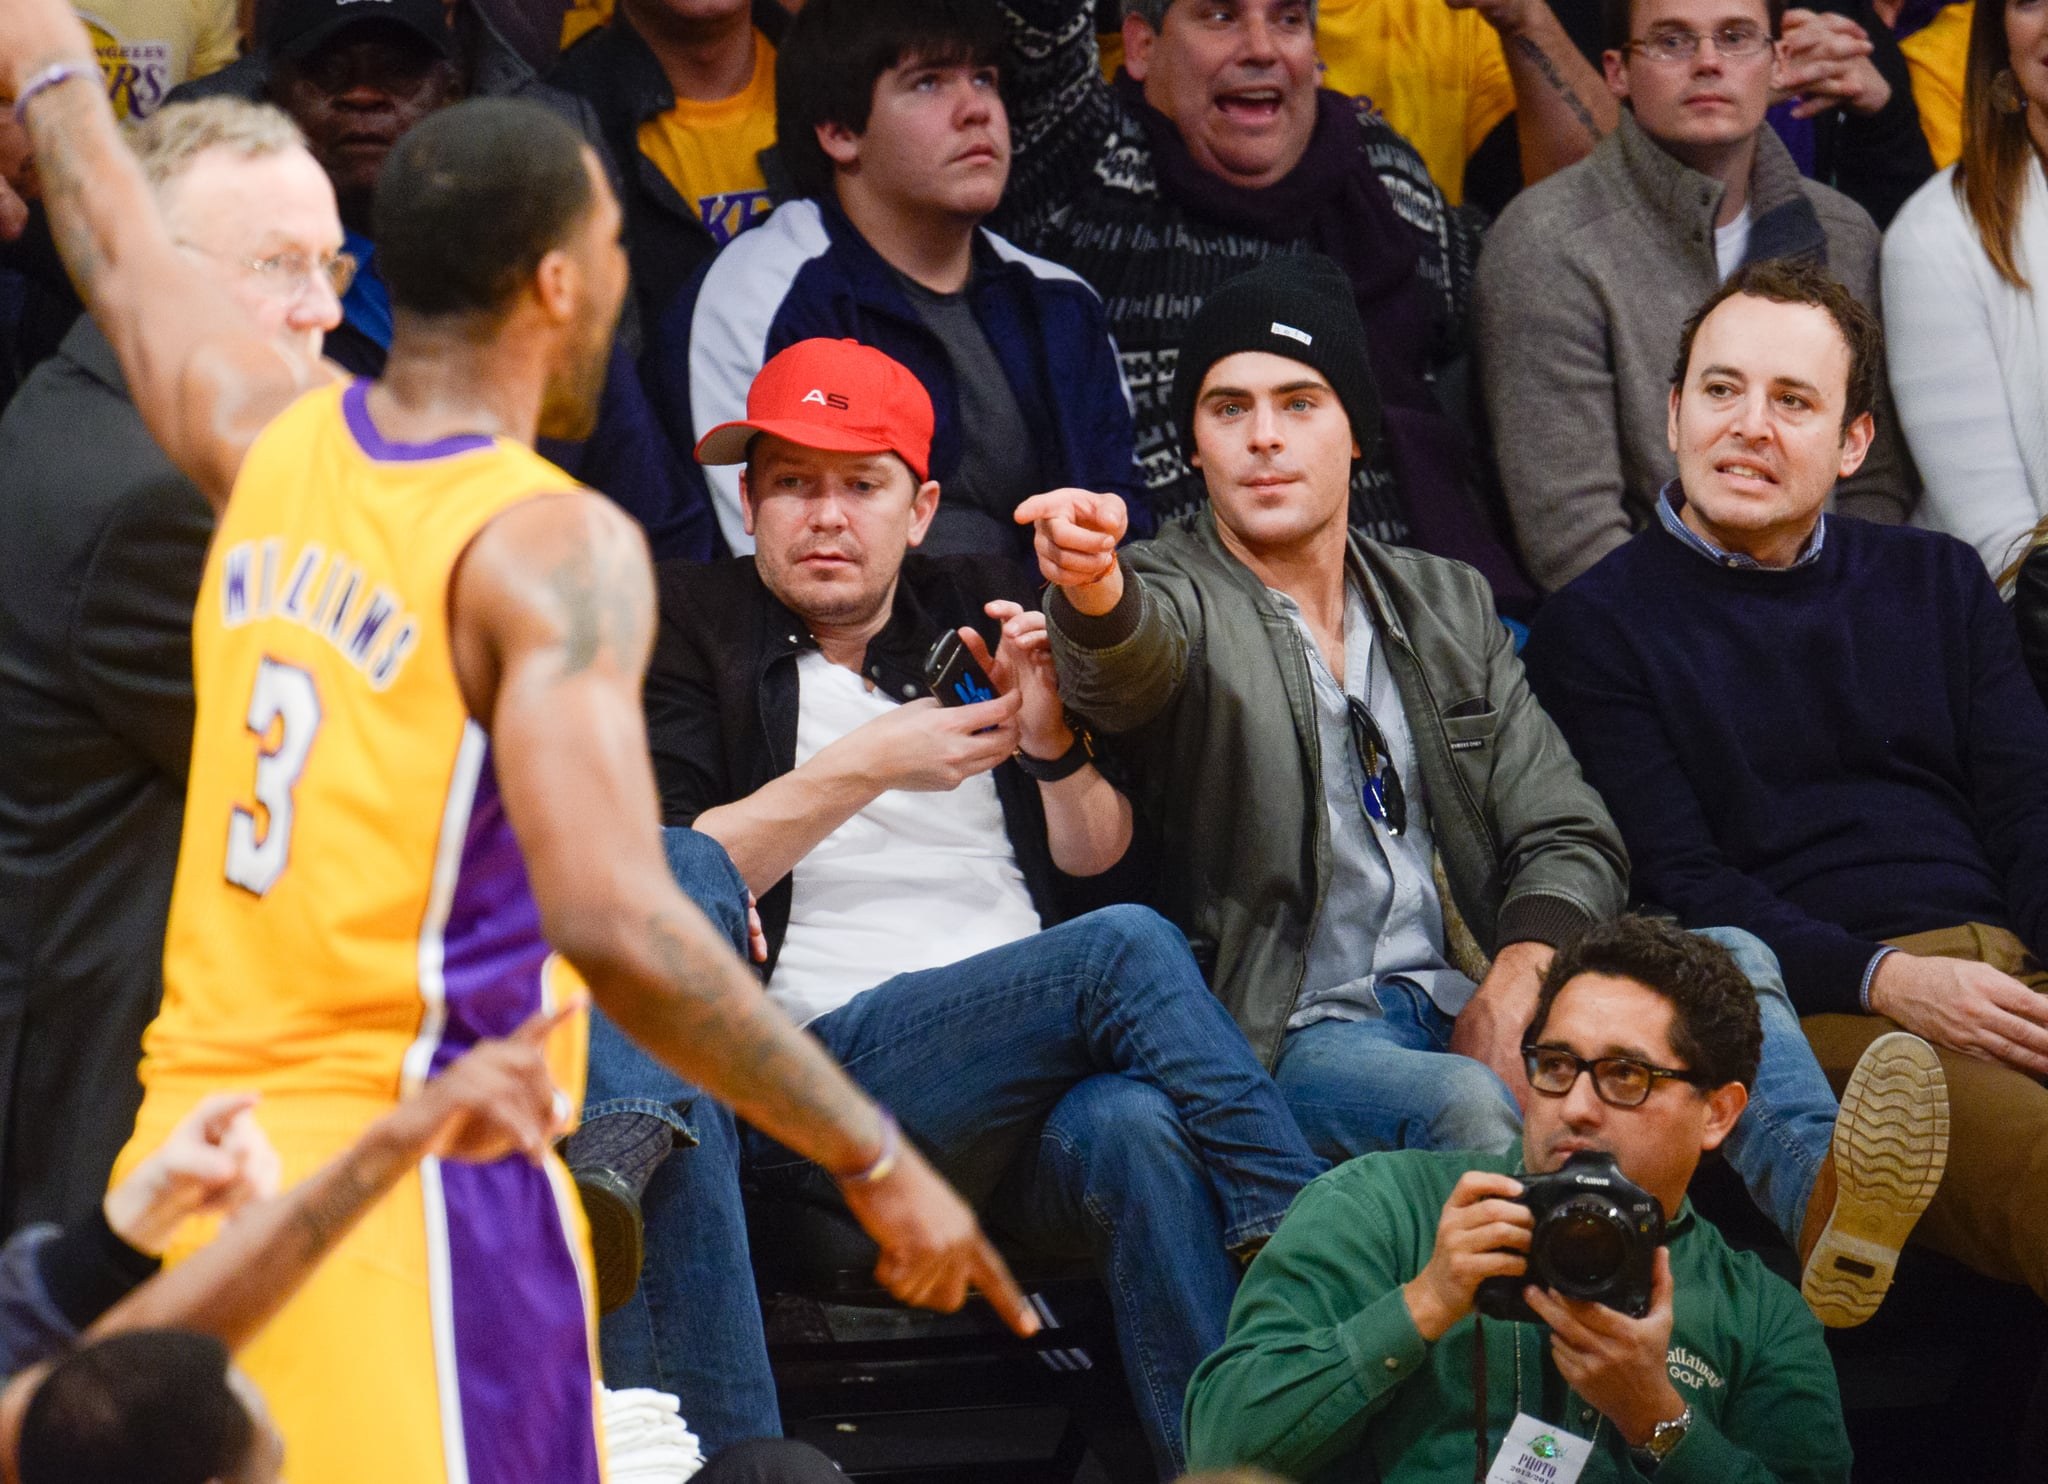 In December 2013, Zac Efron got involved when his LA Lakers played the Minnesota Timberwolves.